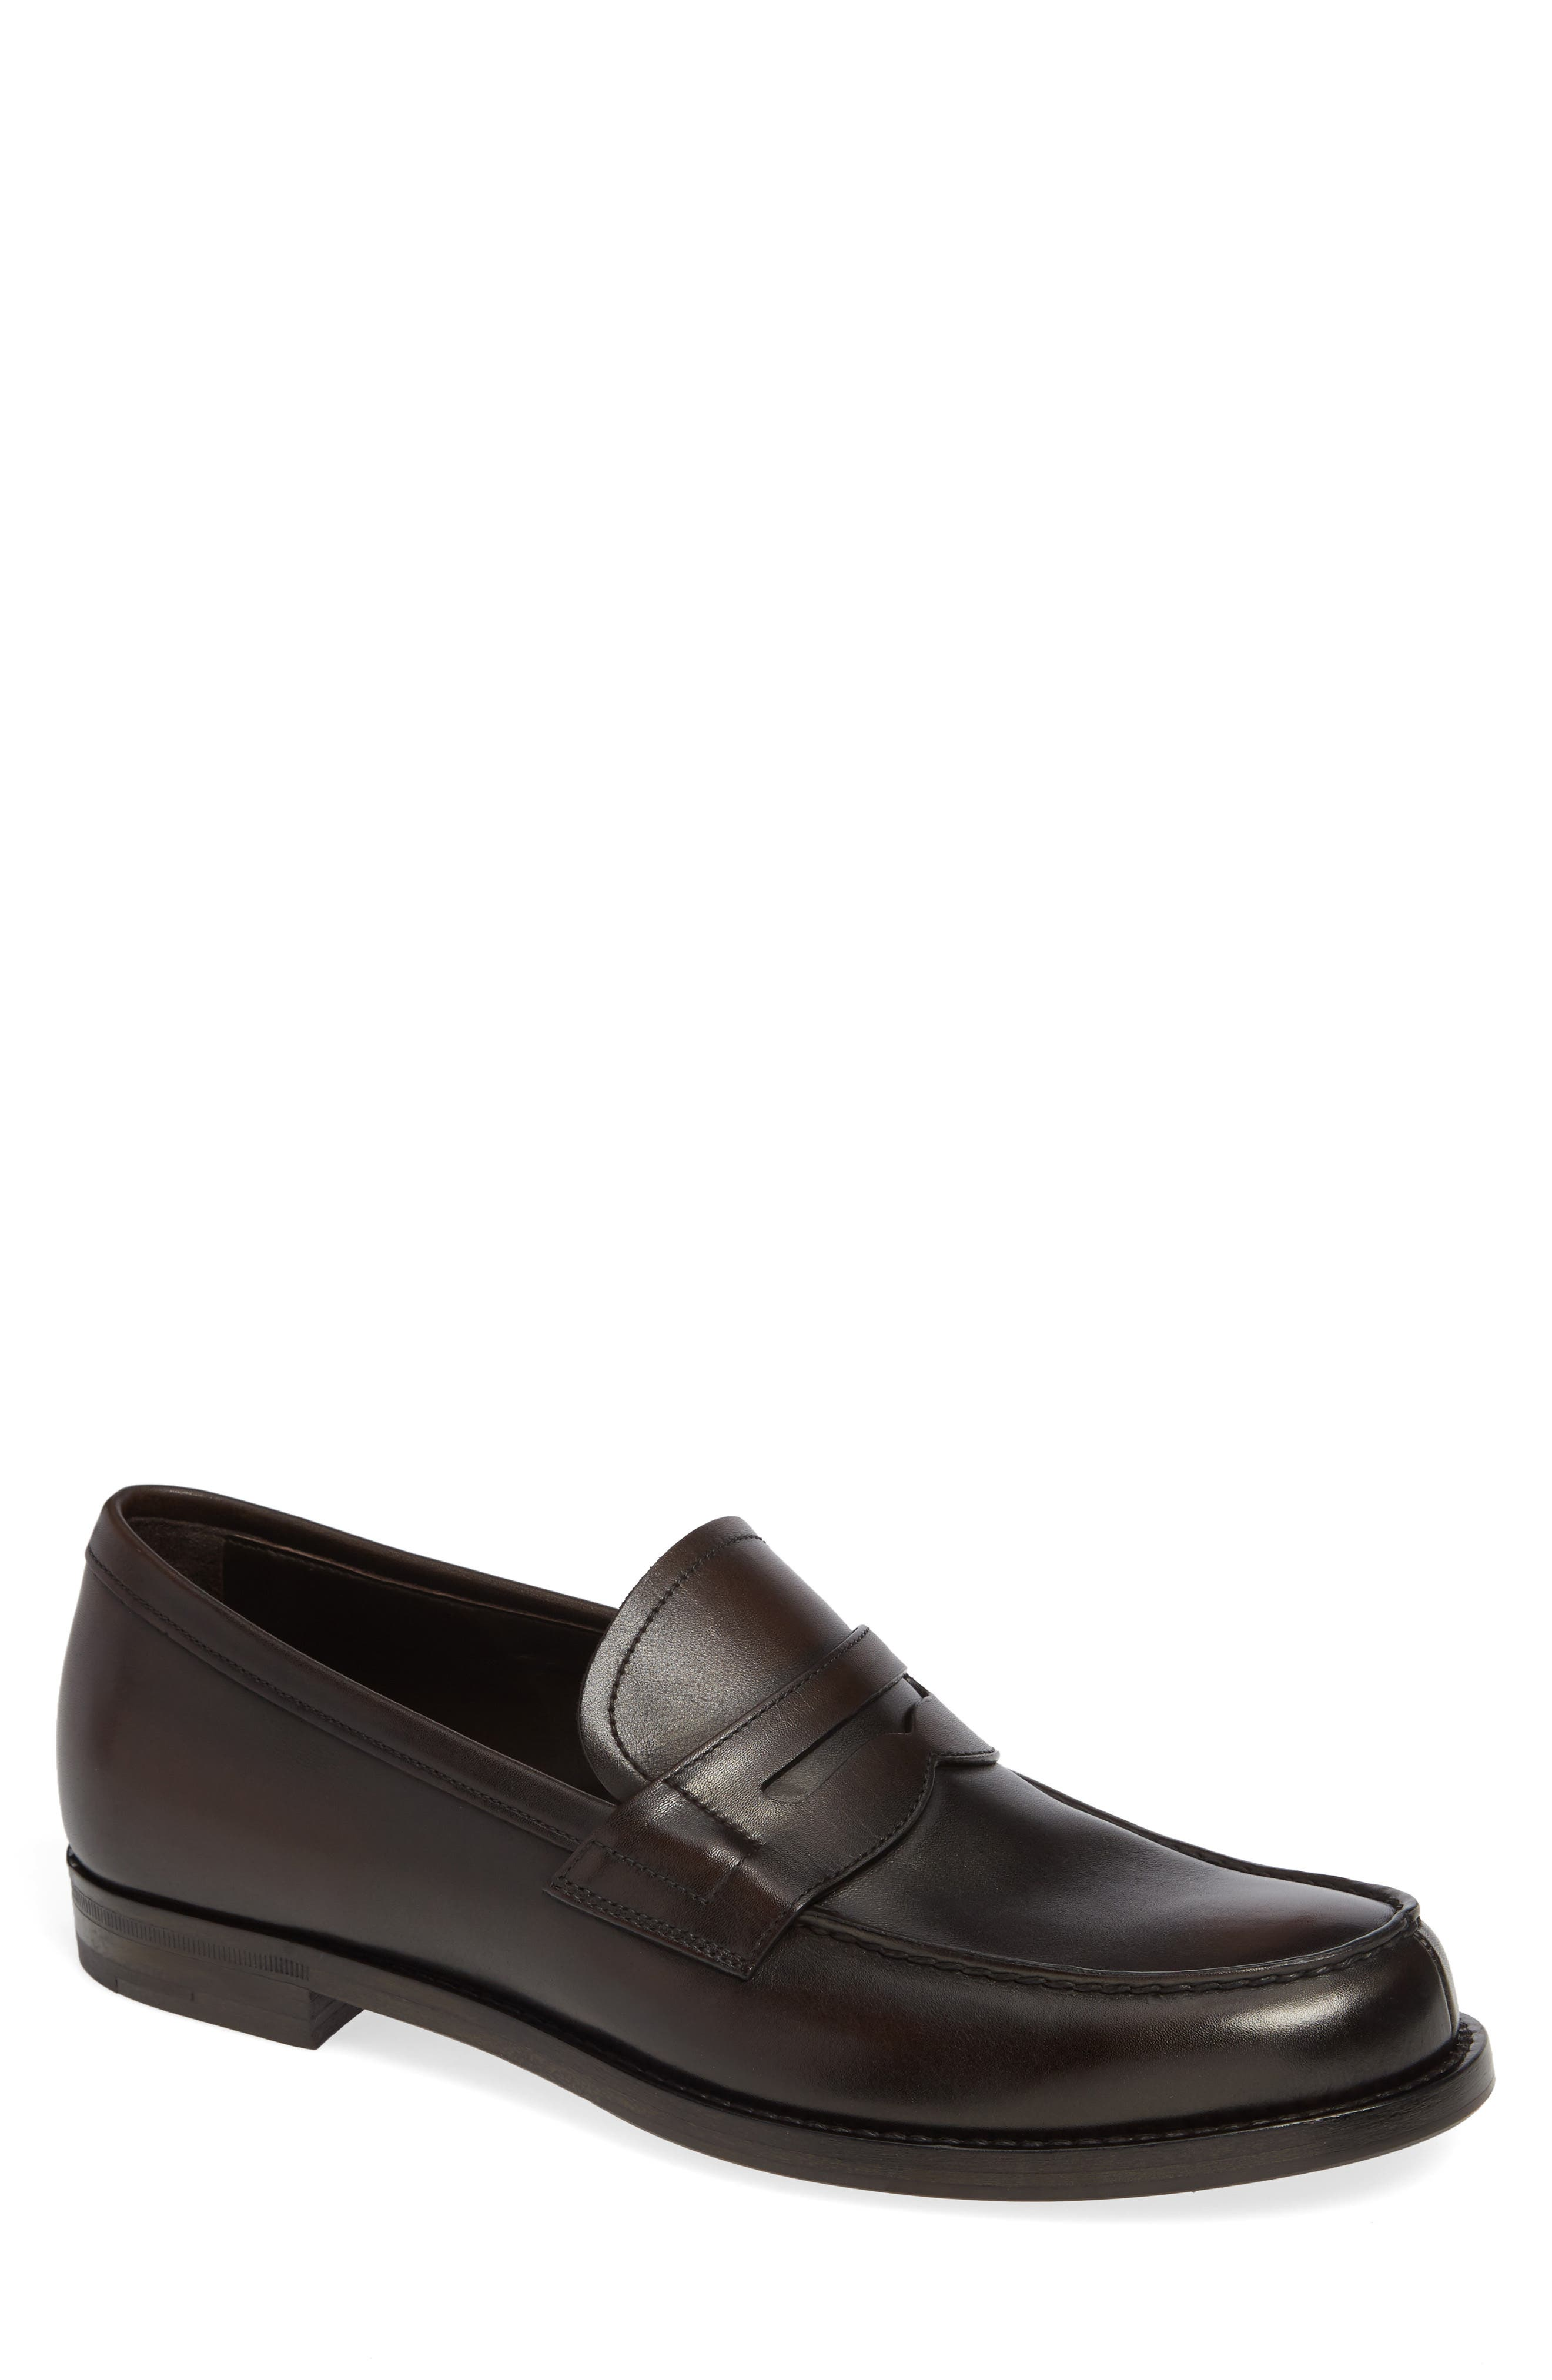 Penny Loafer,                             Main thumbnail 1, color,                             MORO BROWN